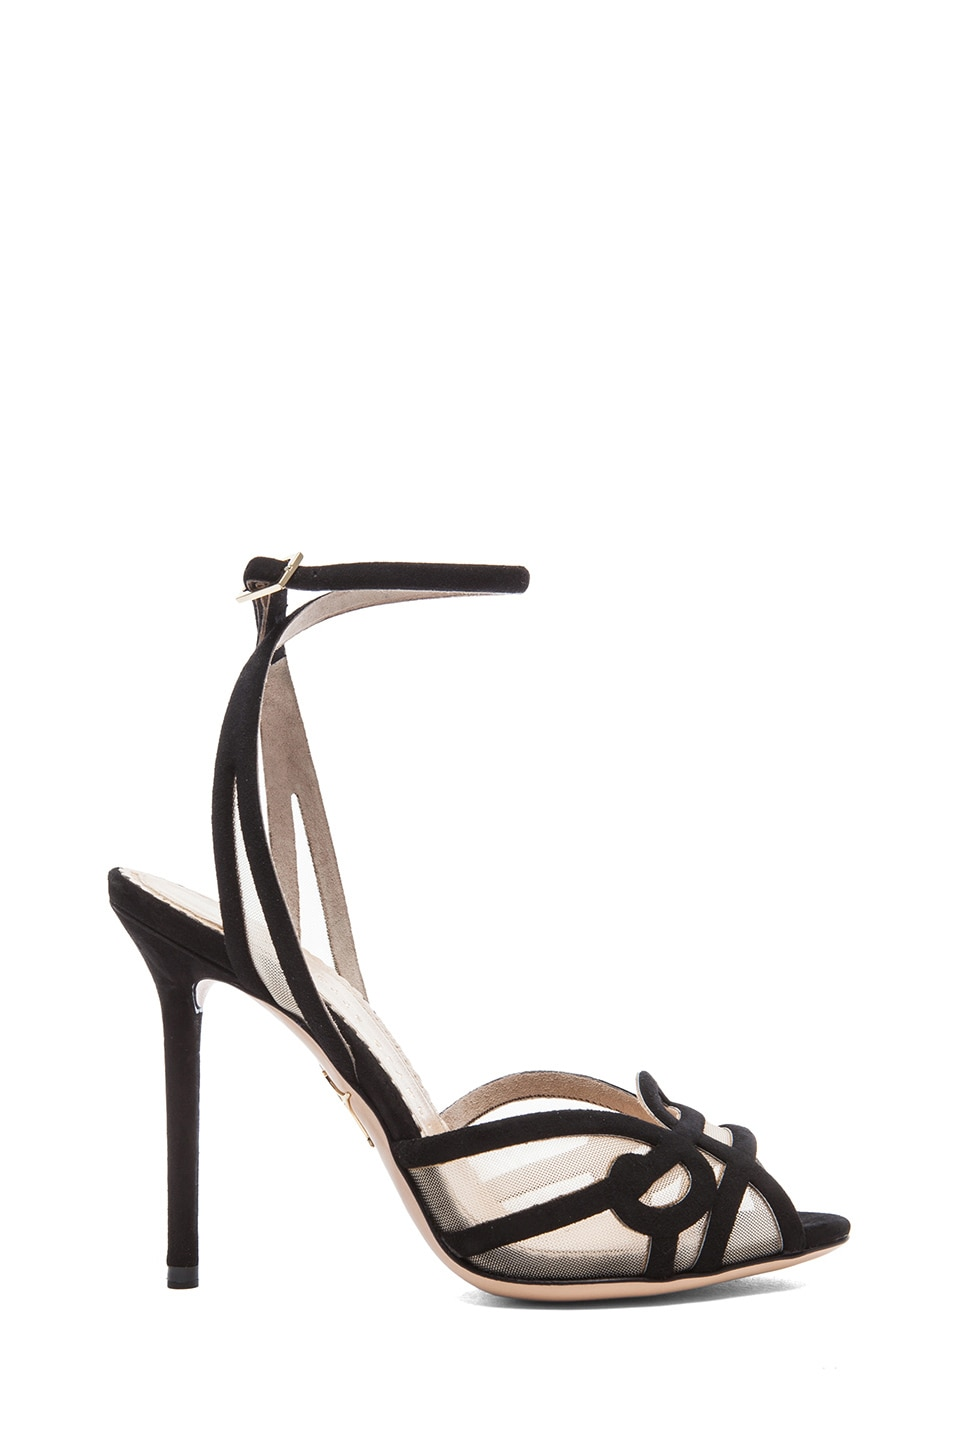 Image 1 of Charlotte Olympia Sugar High Sandals in Black